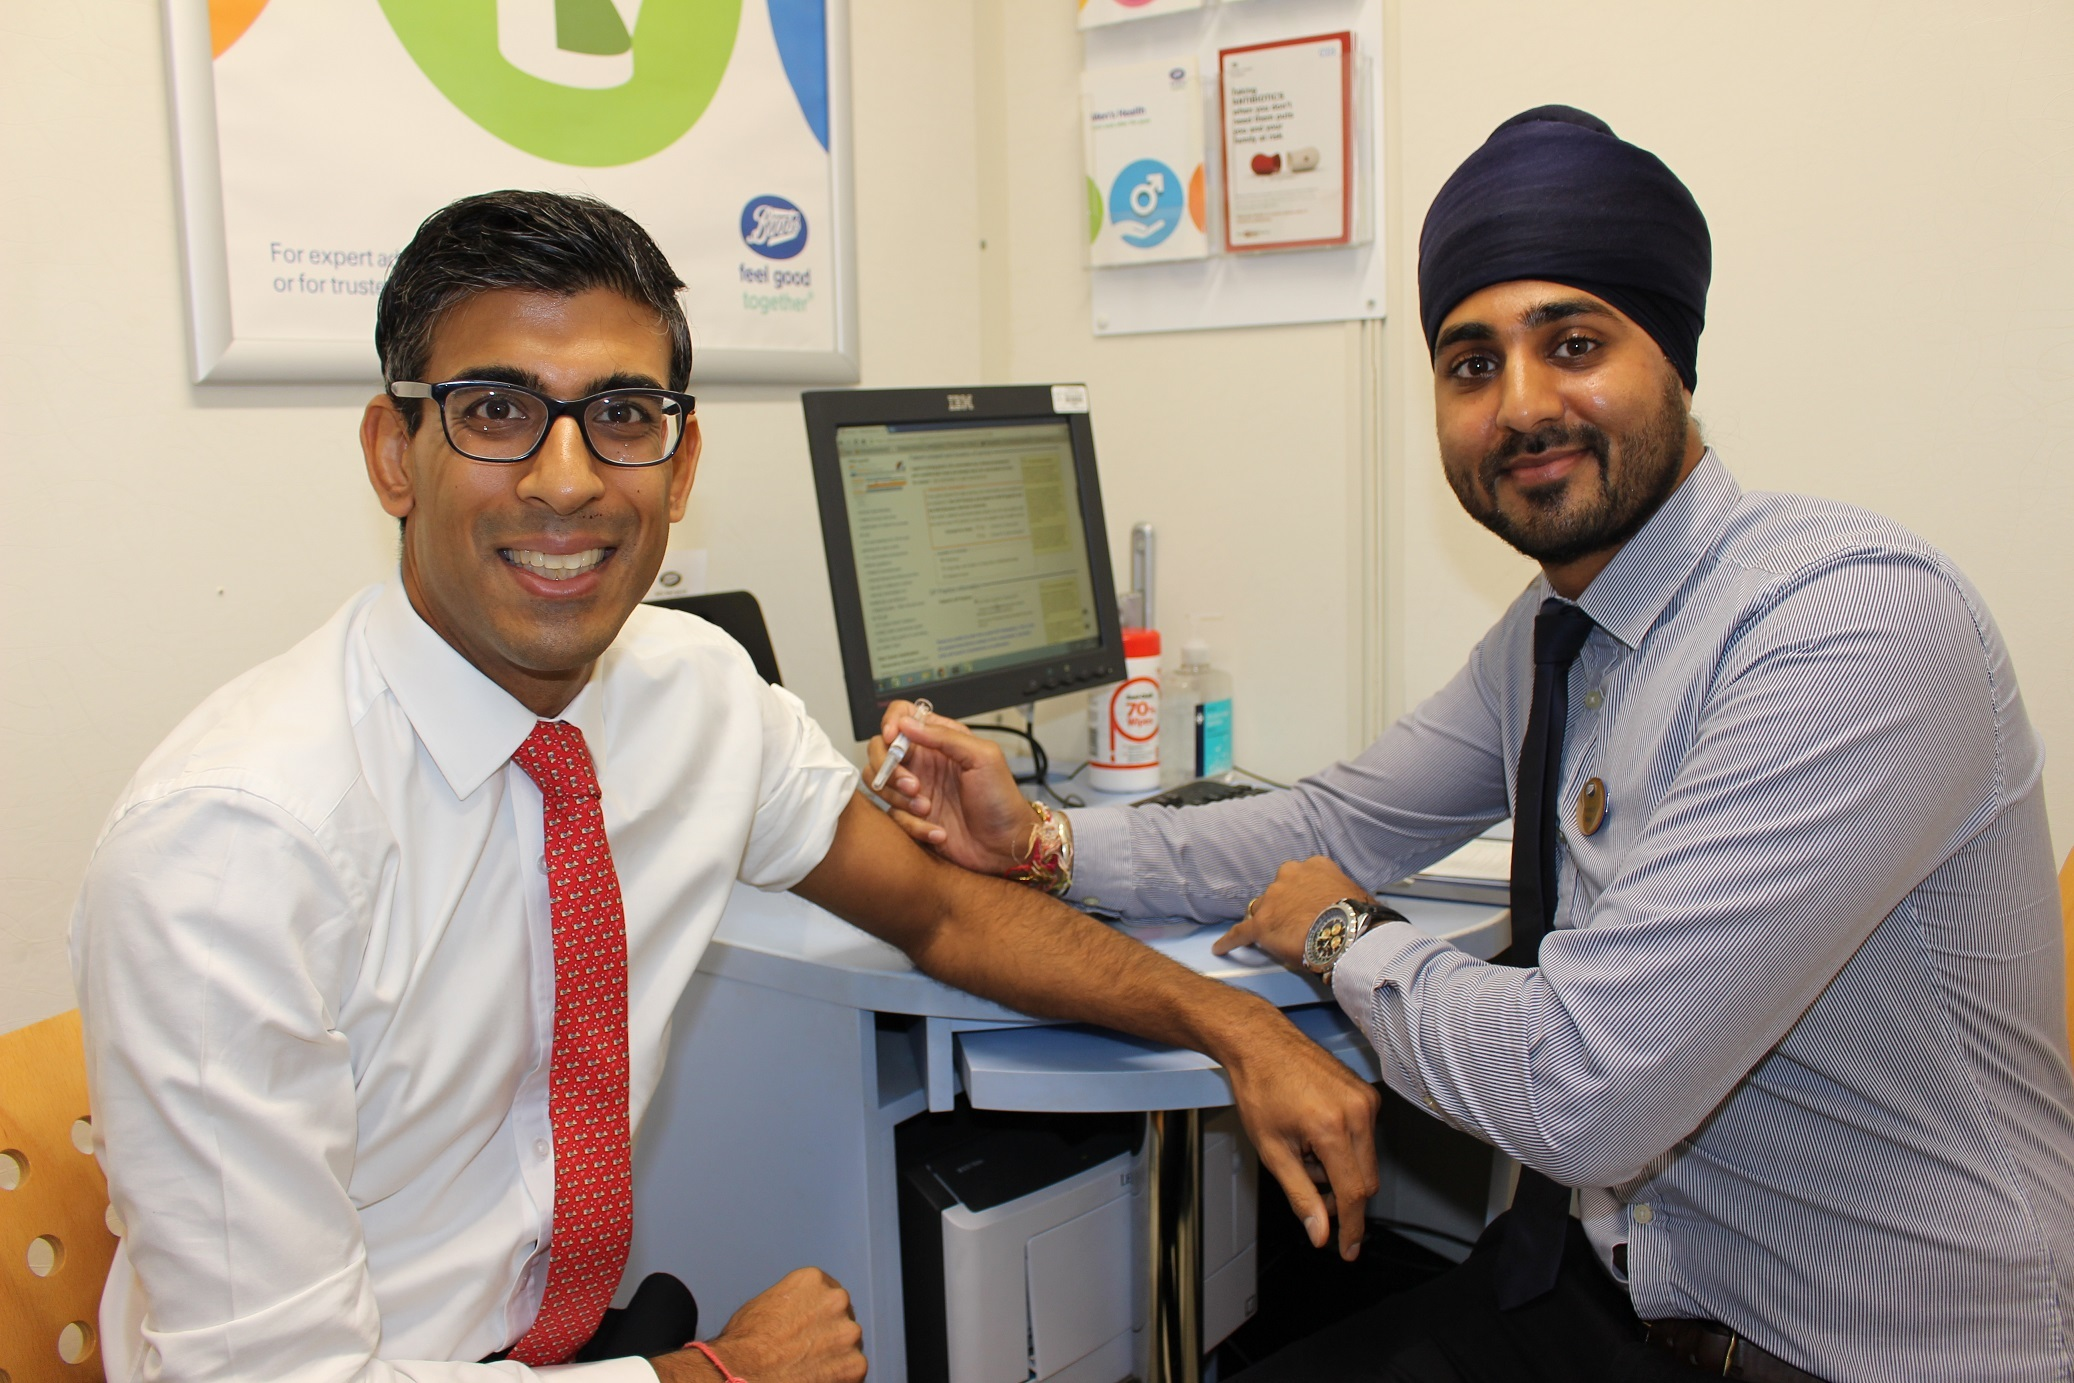 Rishi Sunak receives his flu jab from pharmacist Nicky Singh